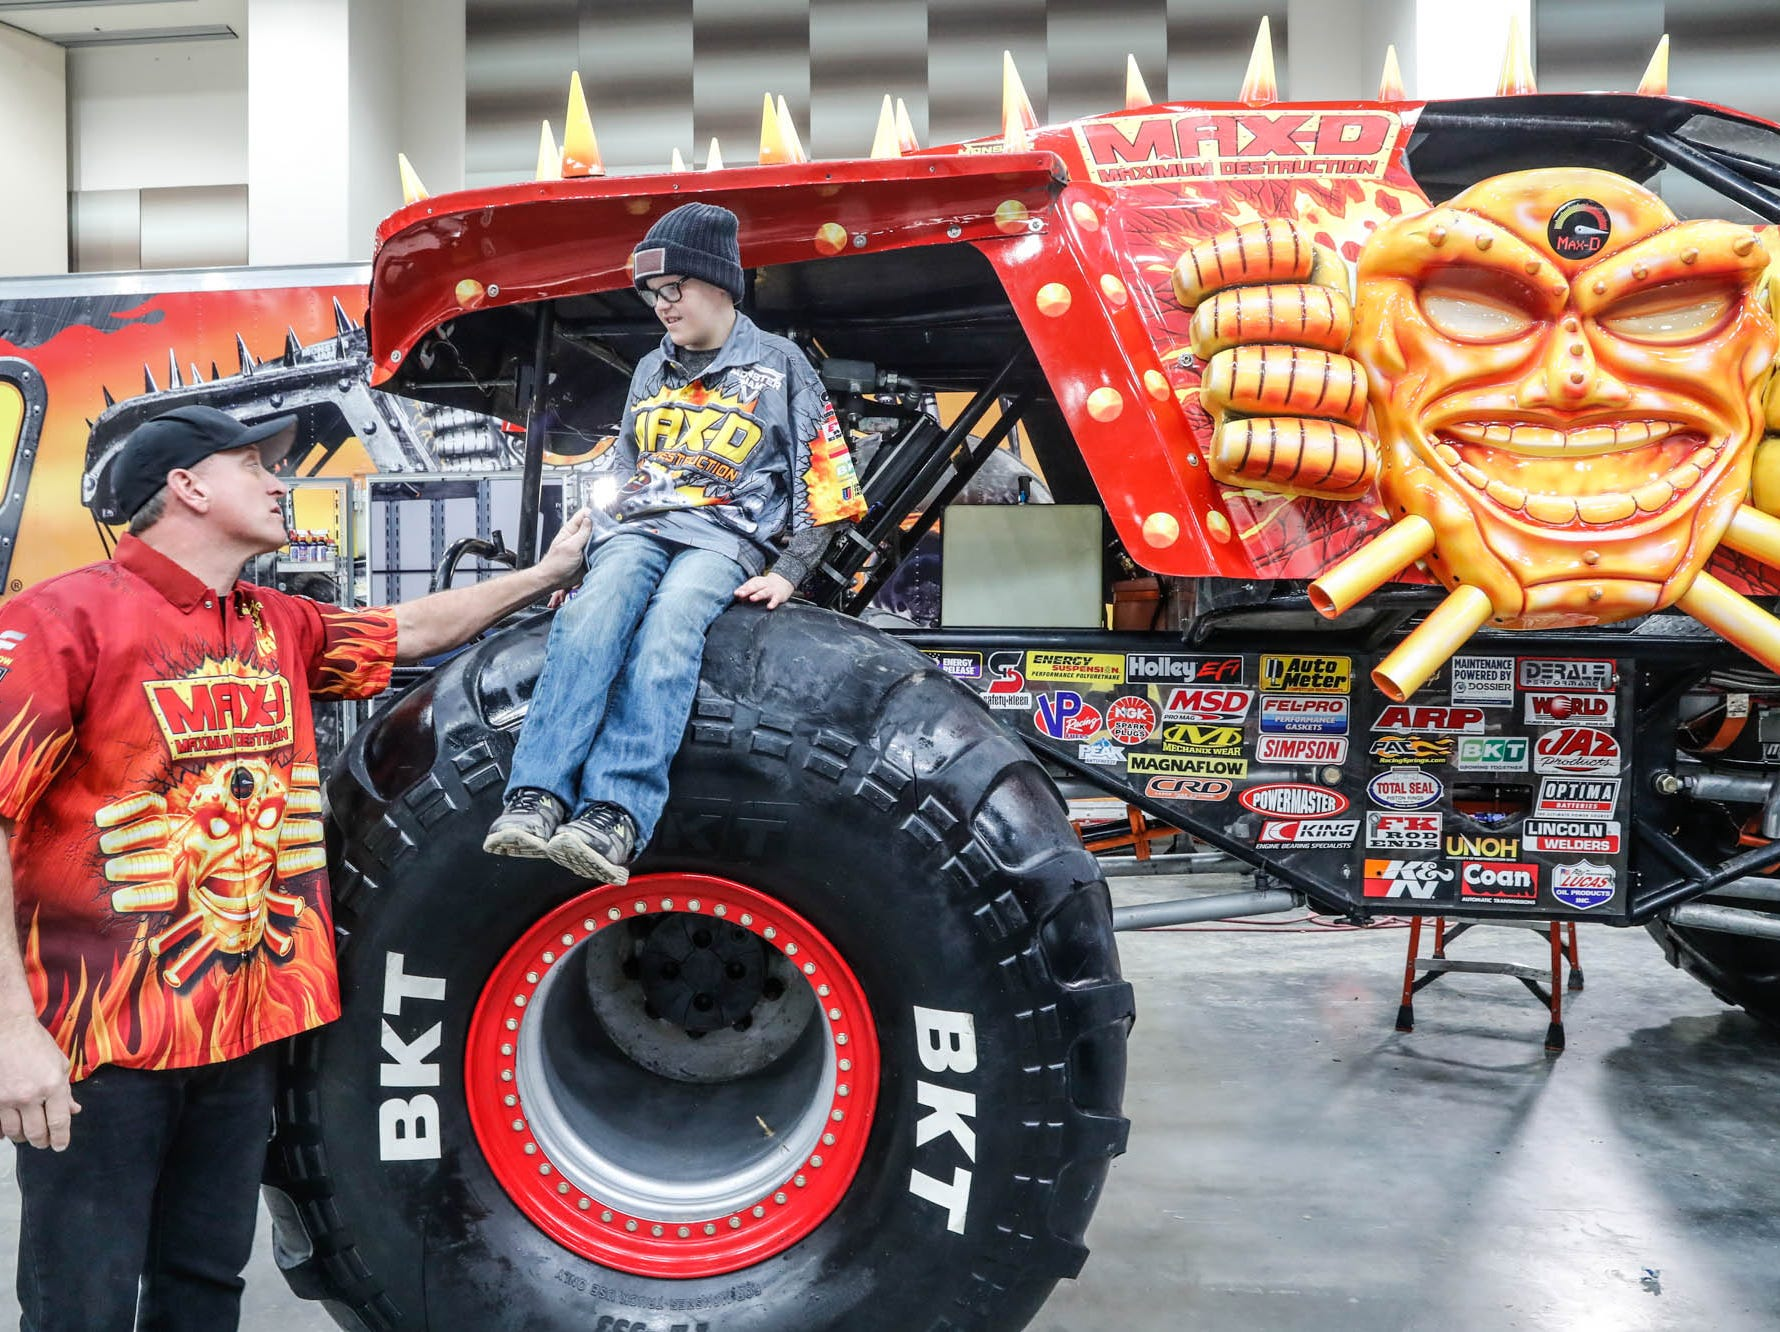 St. Barnabas Catholic School fourth grader, James Egold, who just completed chemo therapy, meets Maximum Destruction monster truck driver Tom Meents, behind the scenes of the Monster Jam at Lucas Oil Stadium on Thursday, Feb. 7, 2019. The visit was thanks to a team up by Monster Jam and Love Your Melon to remodel Egold's room at home while Egold met with Maximum Destruction monster truck driver Tom Meents.